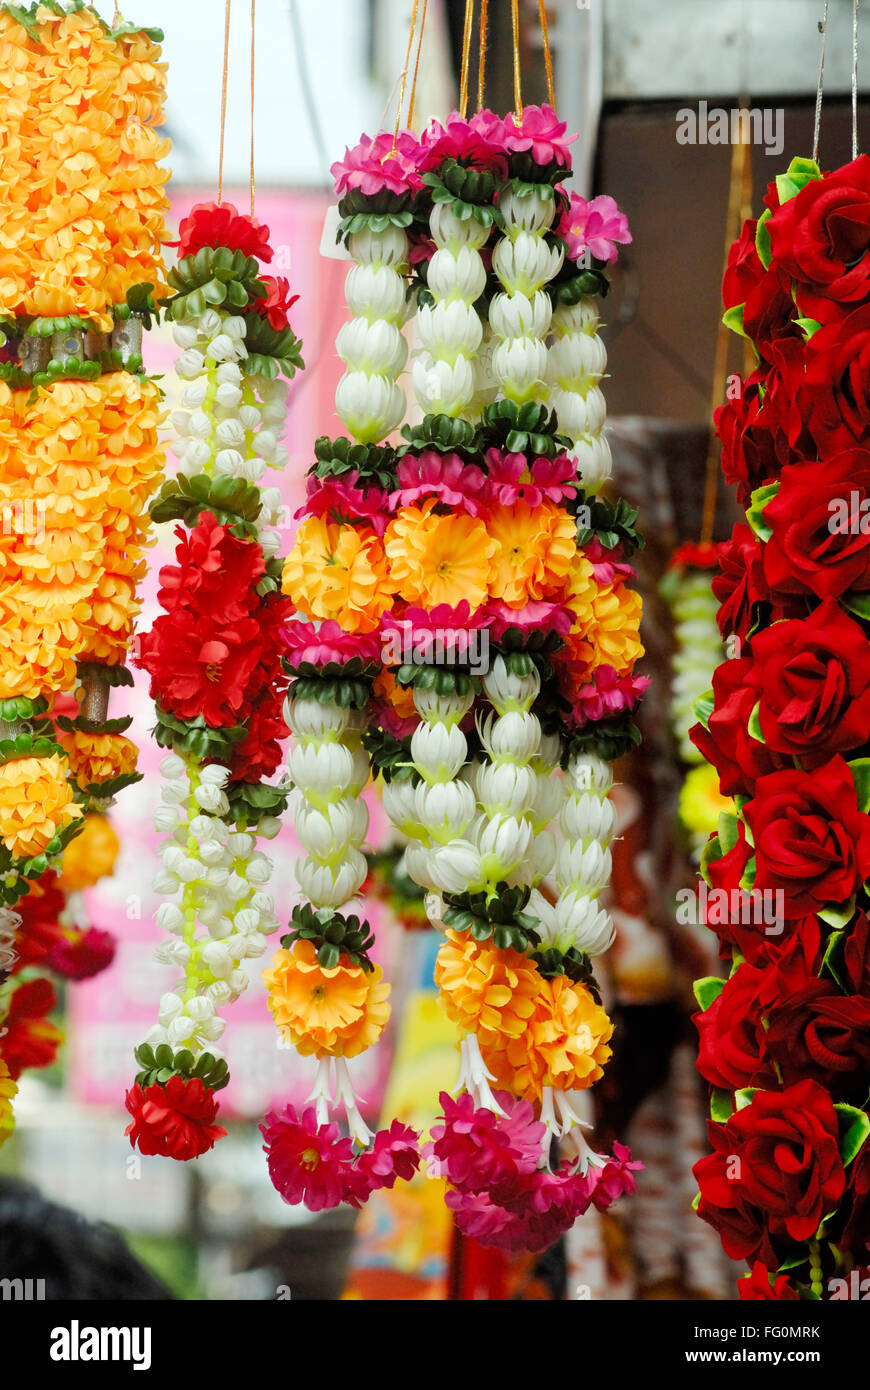 colourful garlands of artificial flowers hang for sale